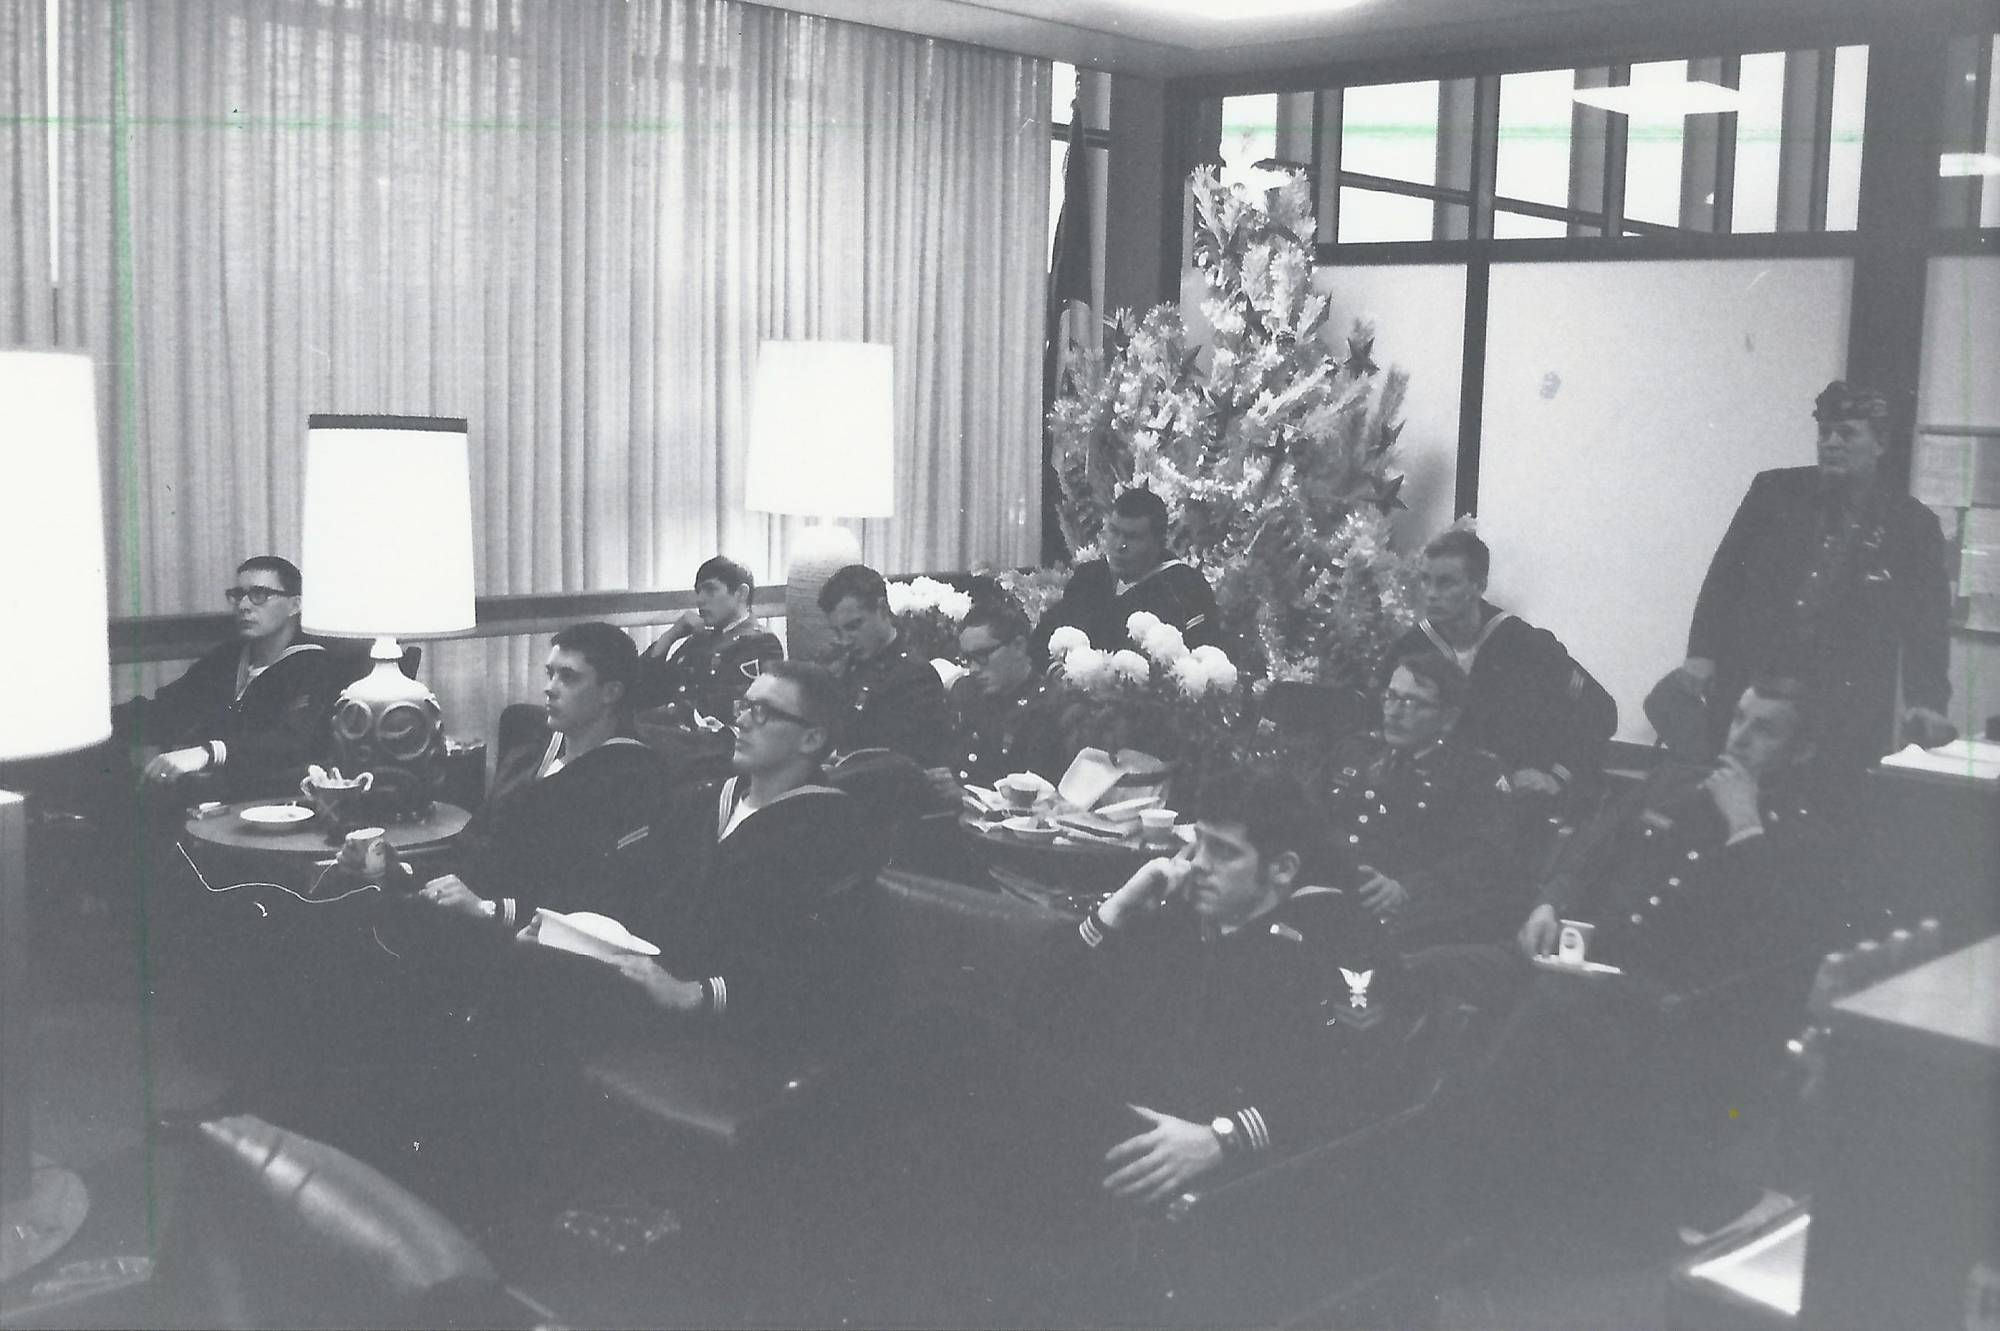 Servicemen sitting on leather seats in a lounge, Christmas tree in the background.